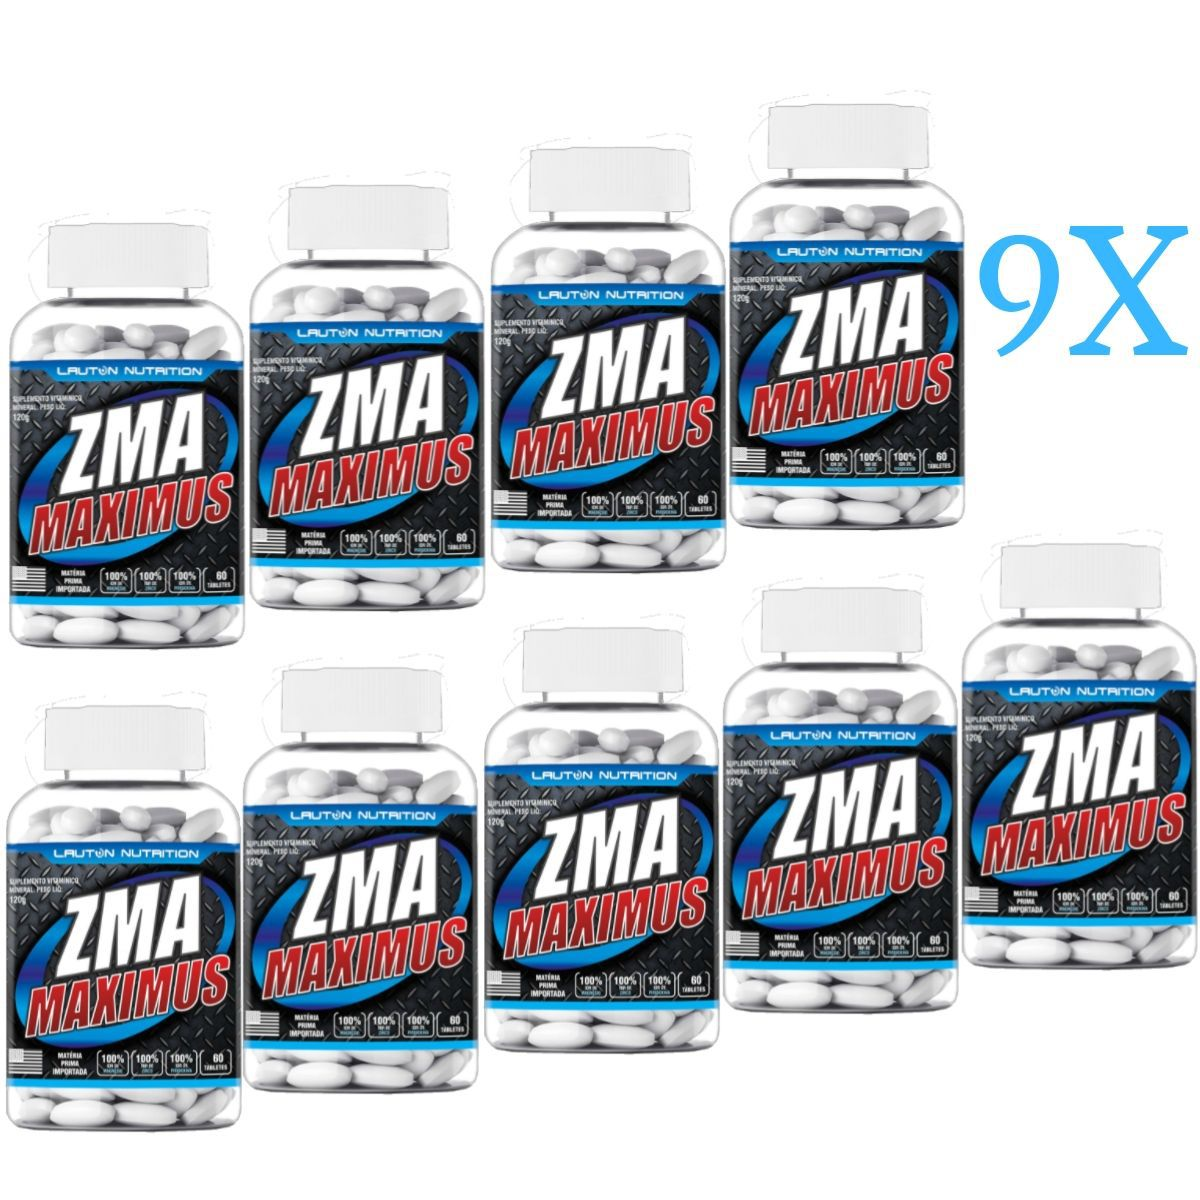 Kit 9 ZMA Maximus Lauton Nutrition - 60 Tablets 1G